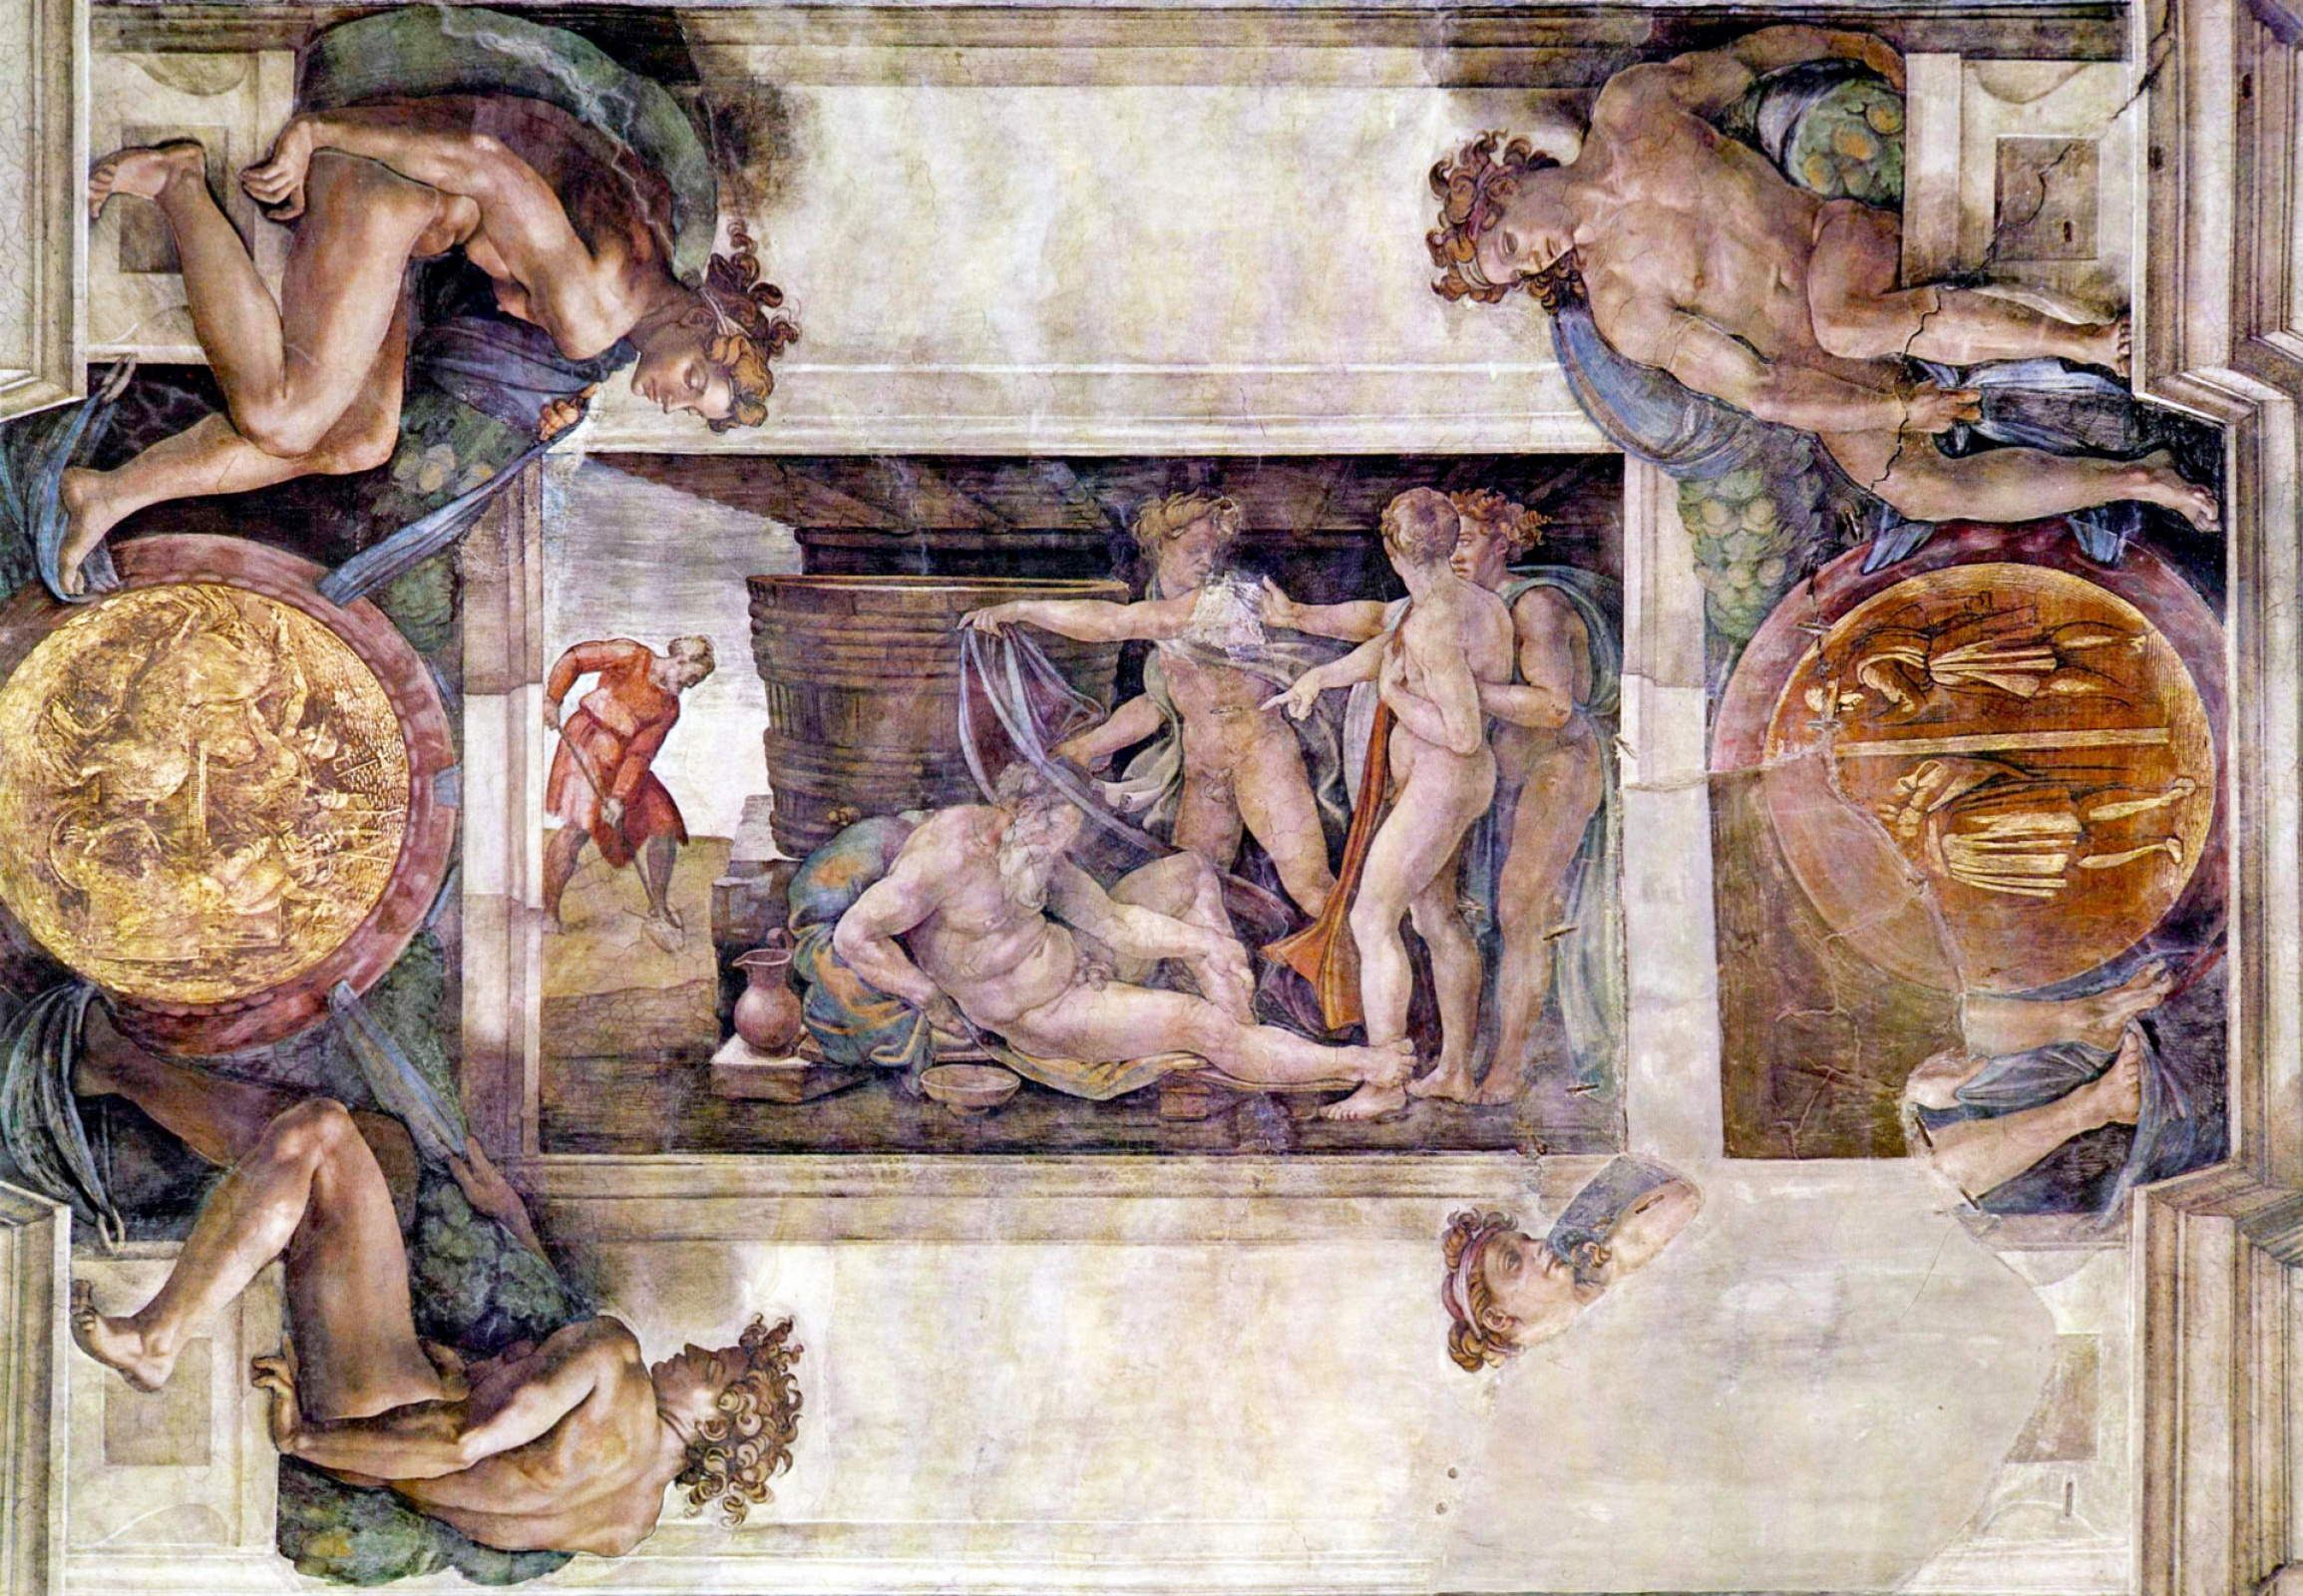 Michelangelo Buonarroti The Ceiling Of Sistine Chapel Detail Drunkenness Noah